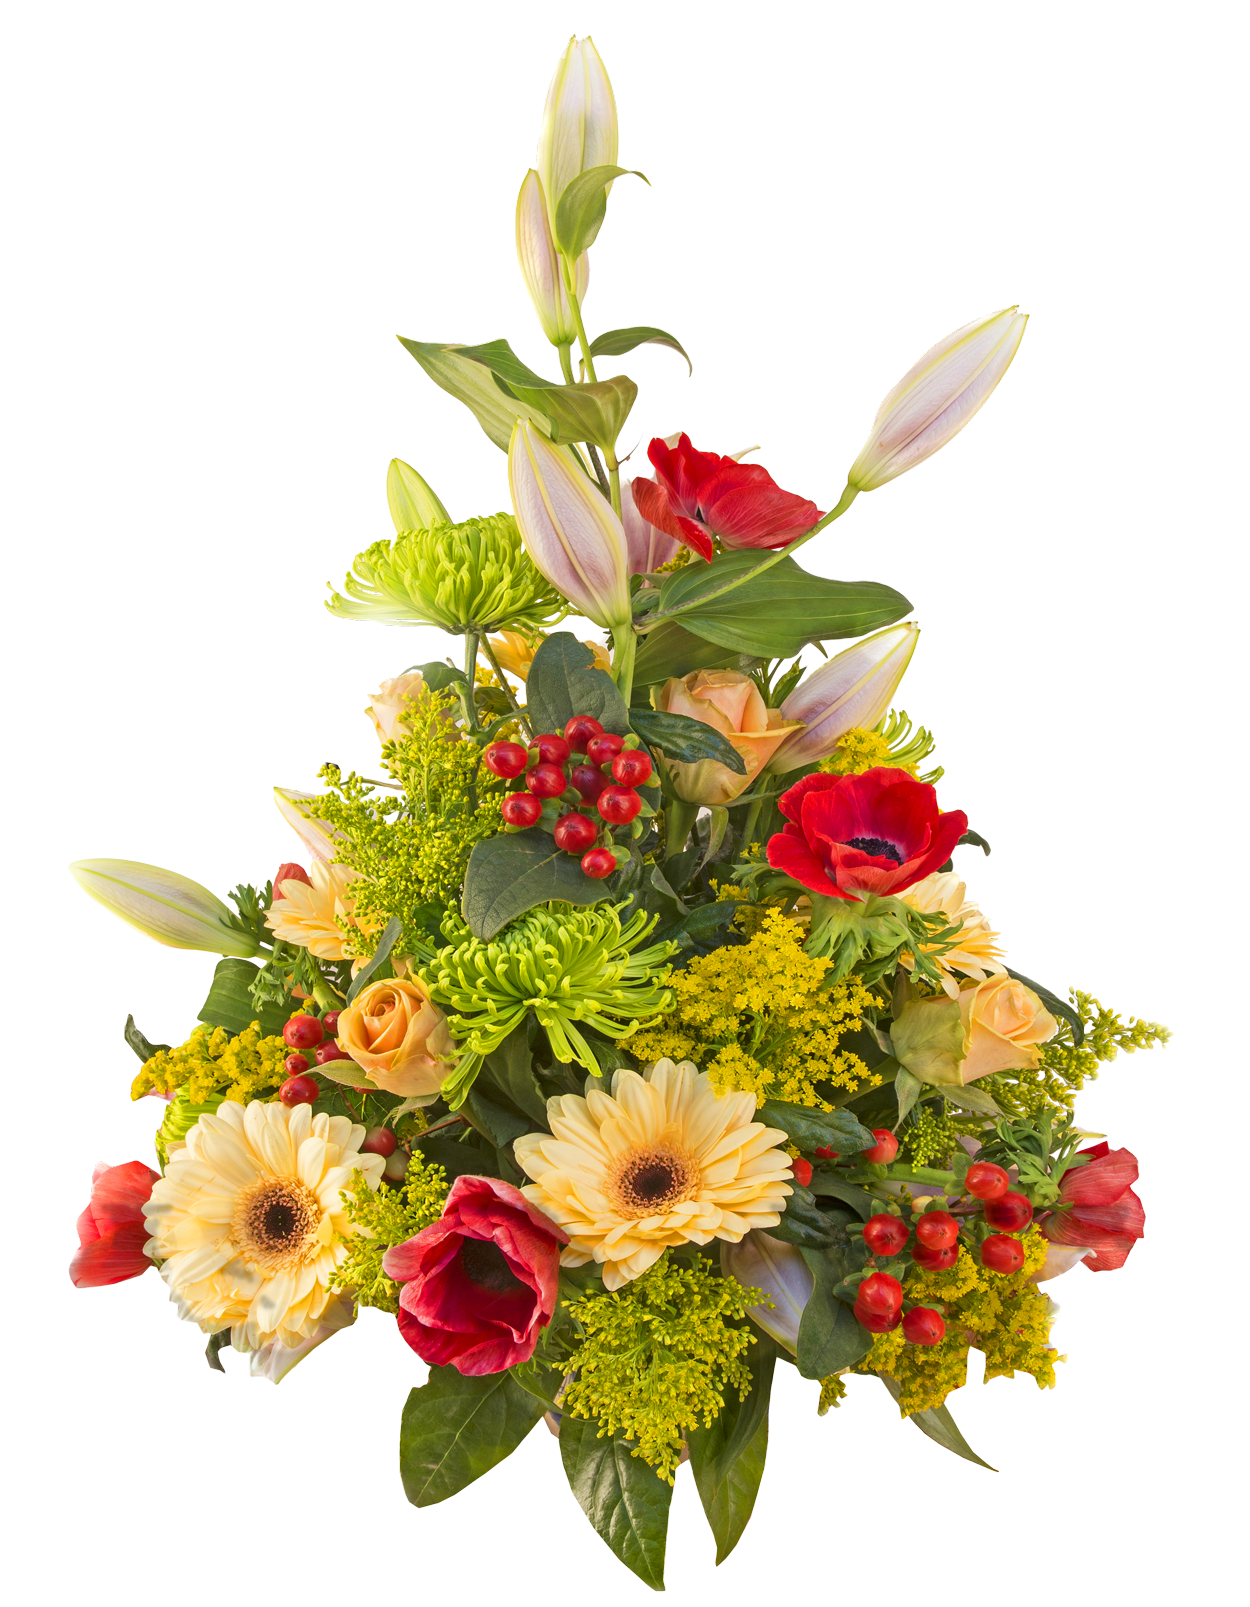 Flower Bouquet Png Transparent Picture 6474